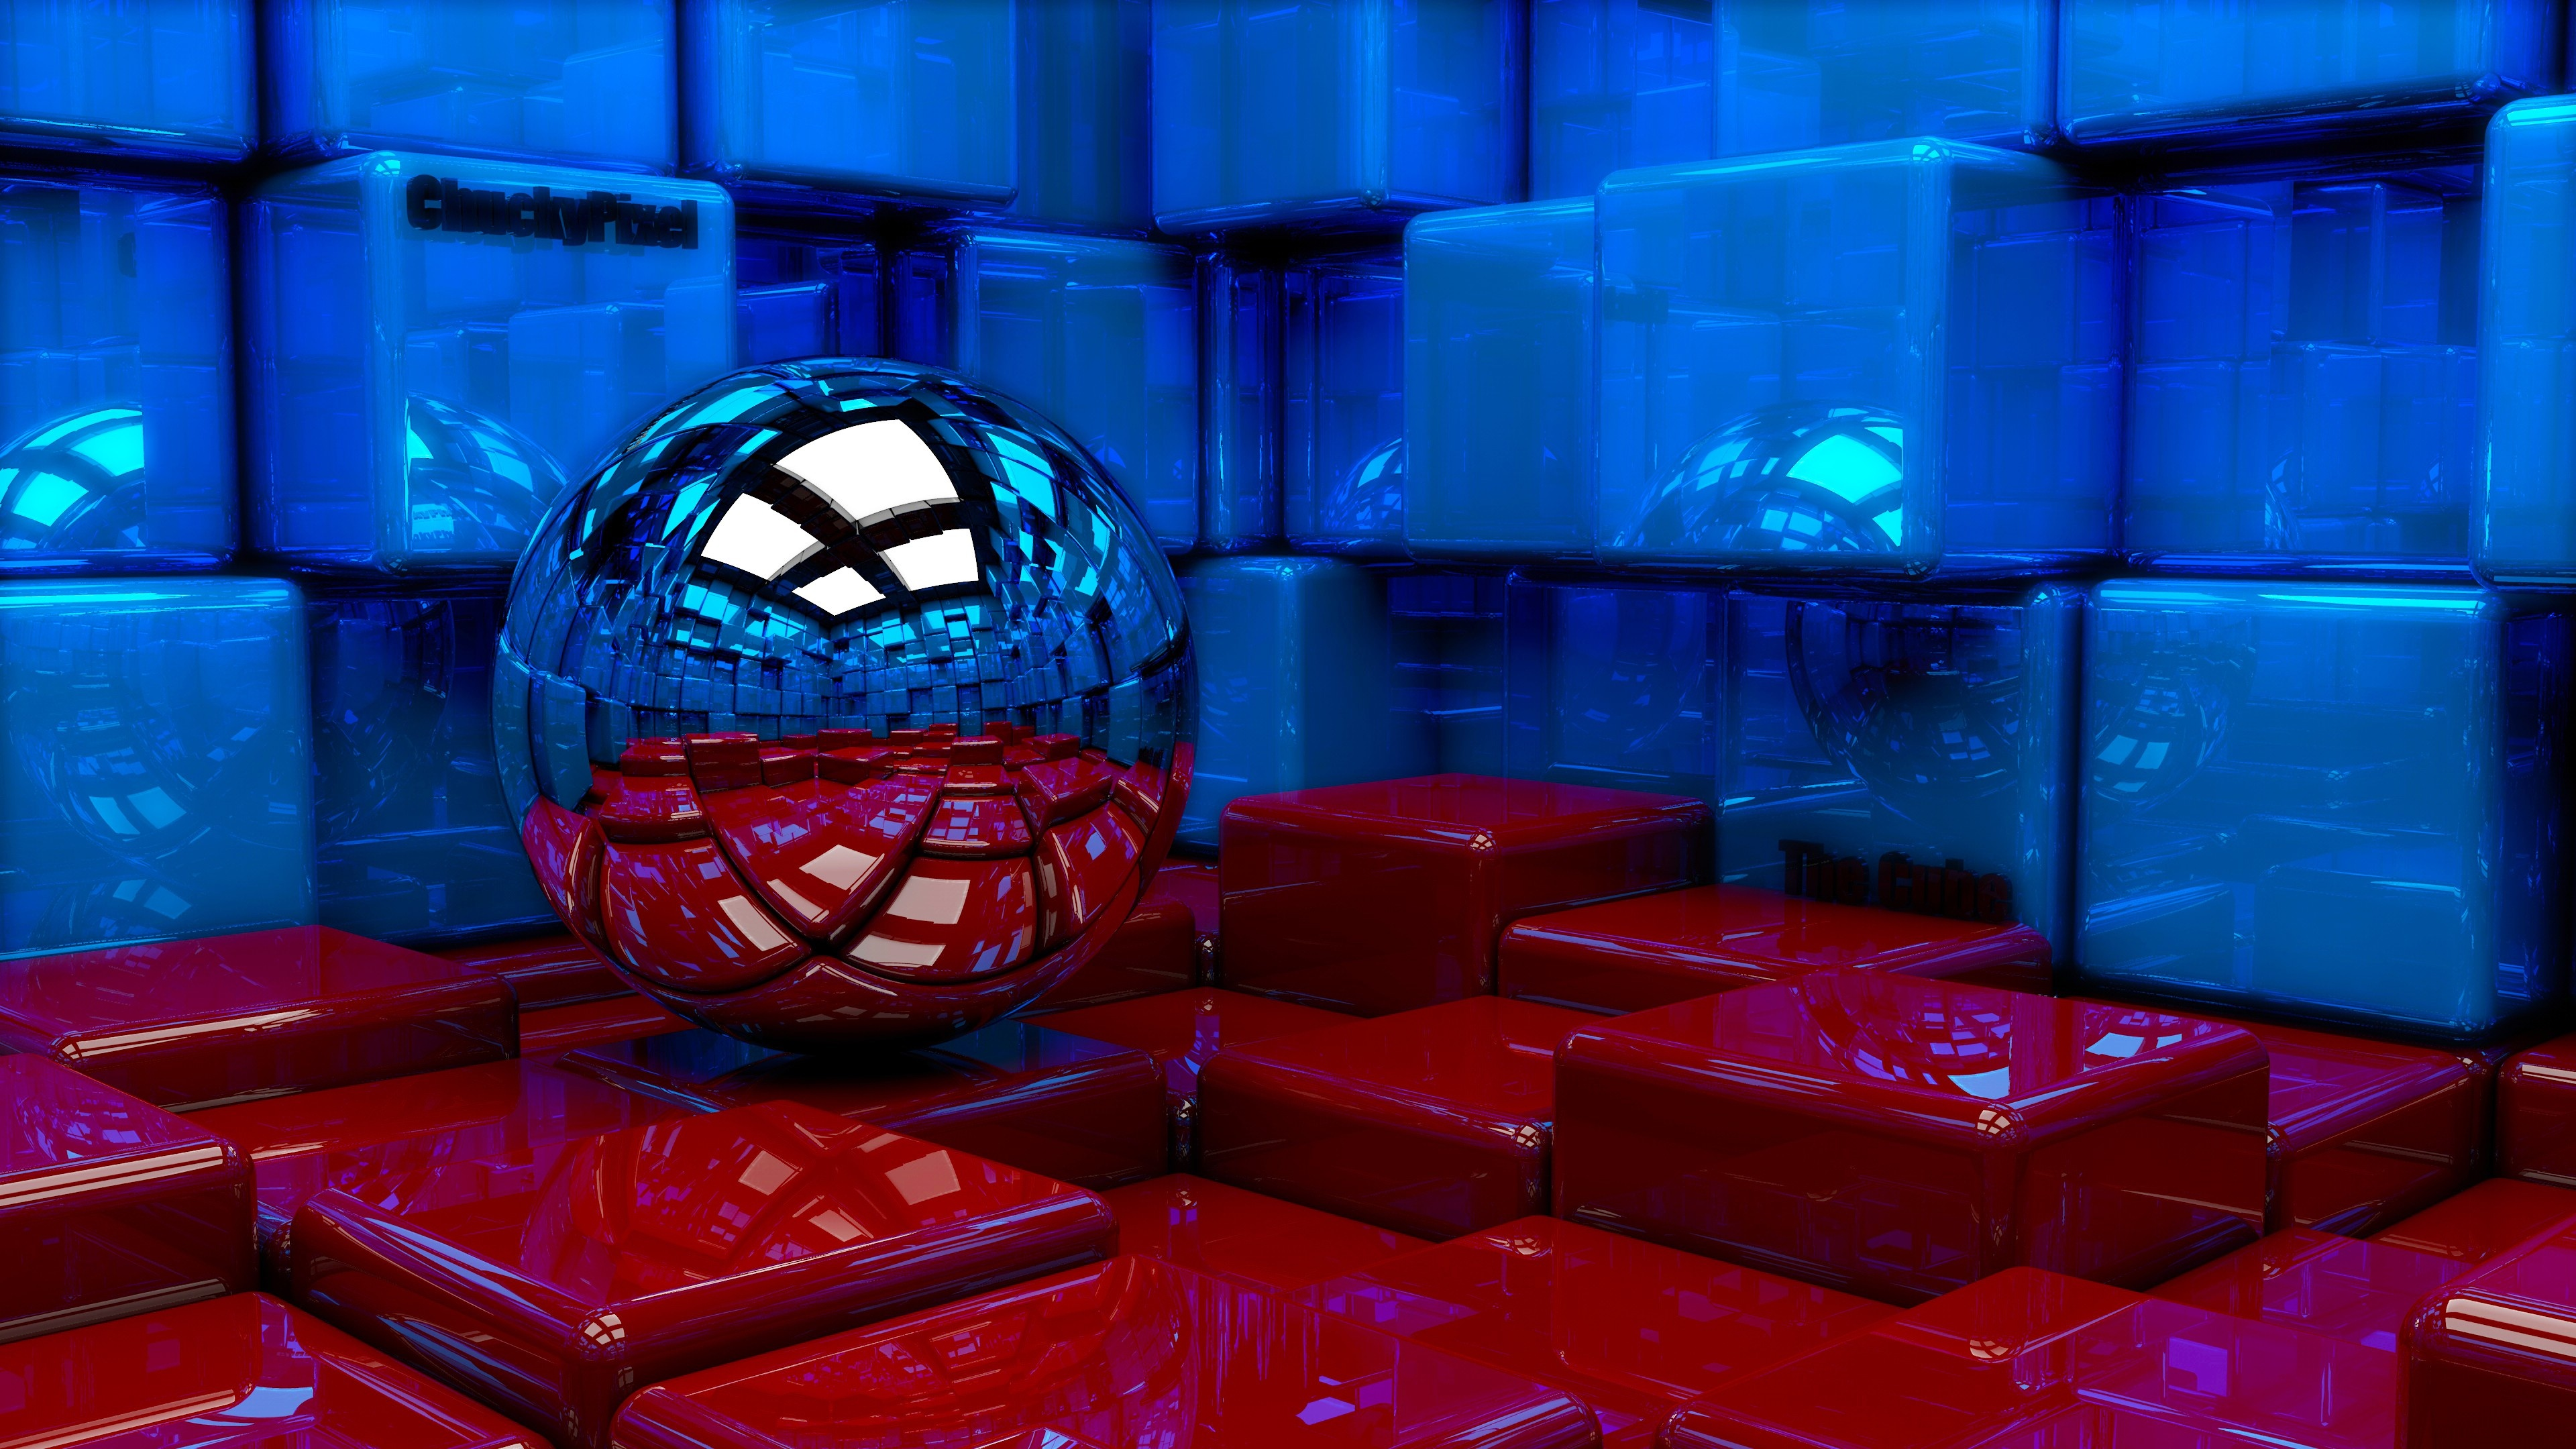 Wallpaper Ball, Cubes, Metal, Blue, Red, Reflection